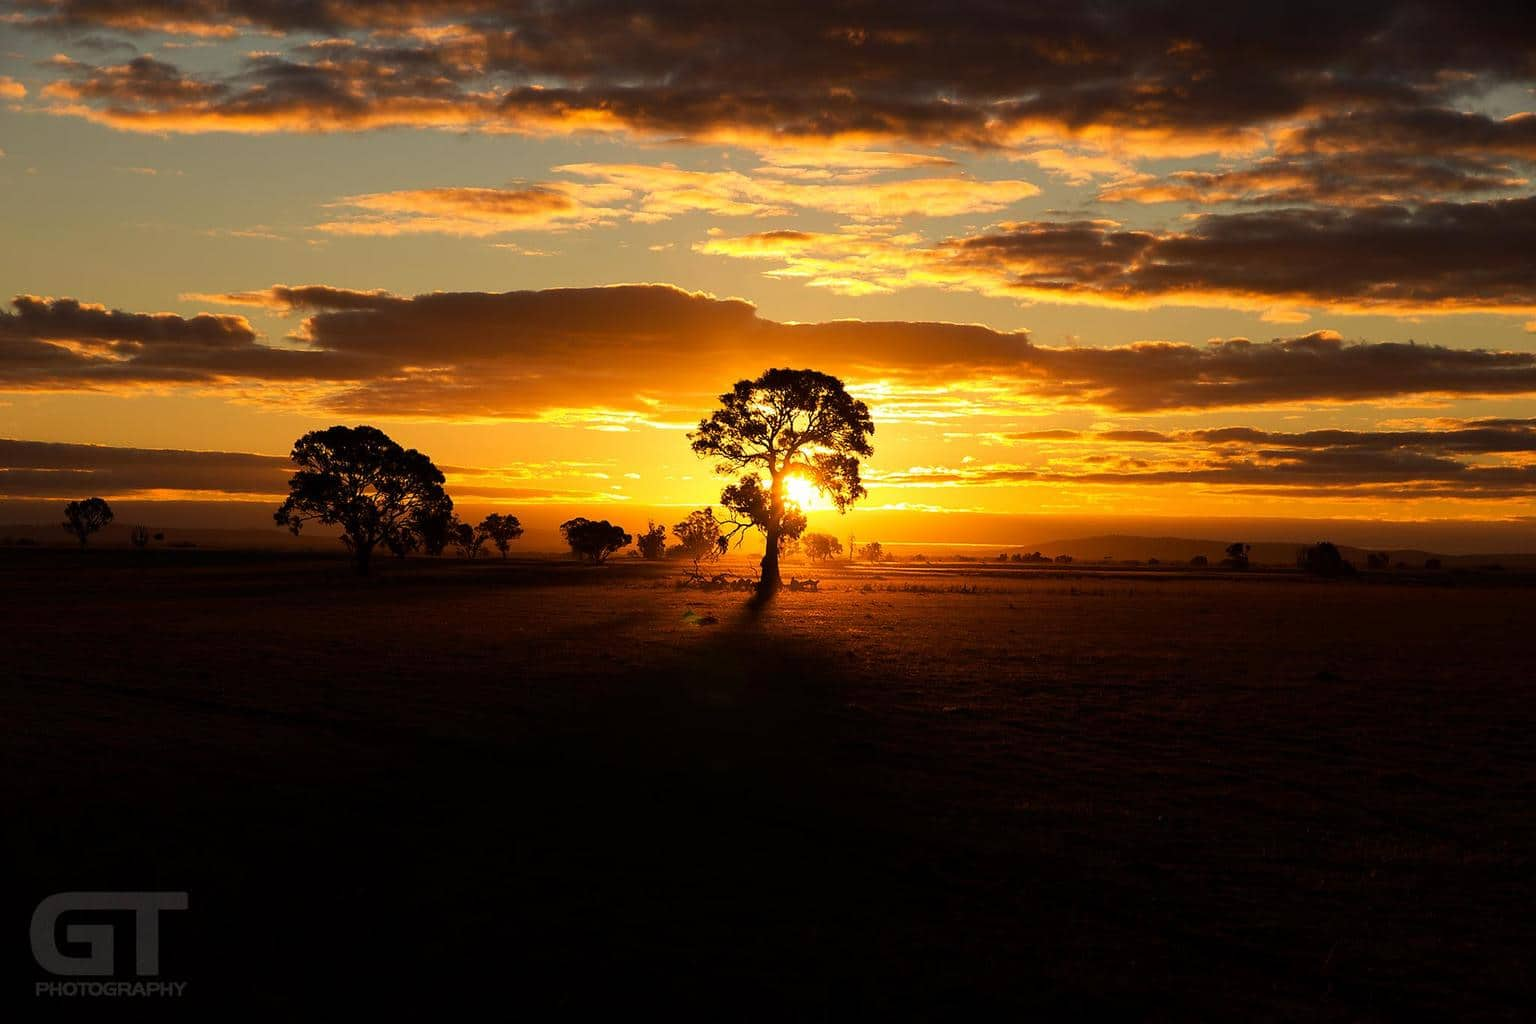 Winter Sunset - from back in July, 2012 on a back road in country Victoria, Australia.